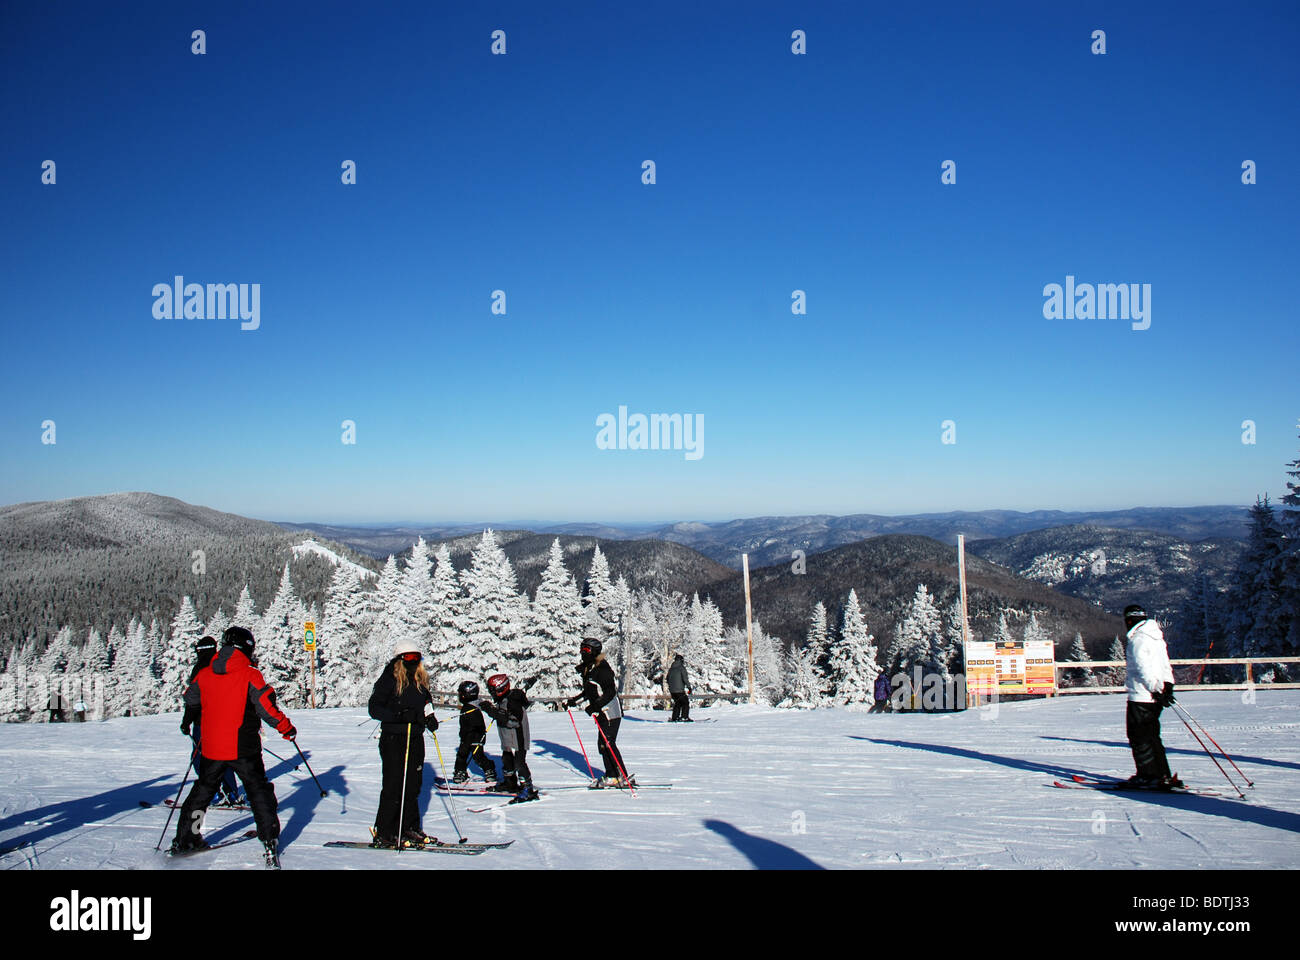 Downhill skiing on Mount Tremblant in Quebec, Canada - Stock Image